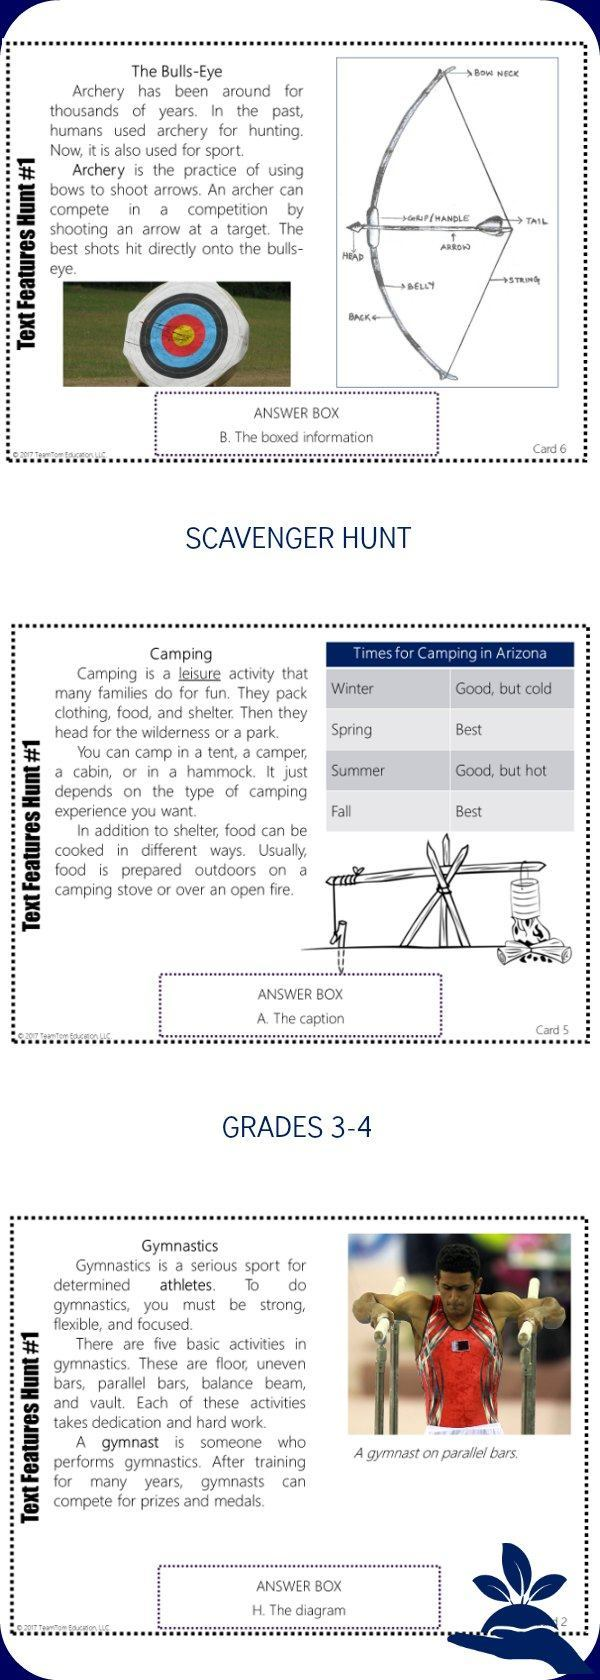 This text feature scavenger hunt engages students in using and understanding text features in informational texts.